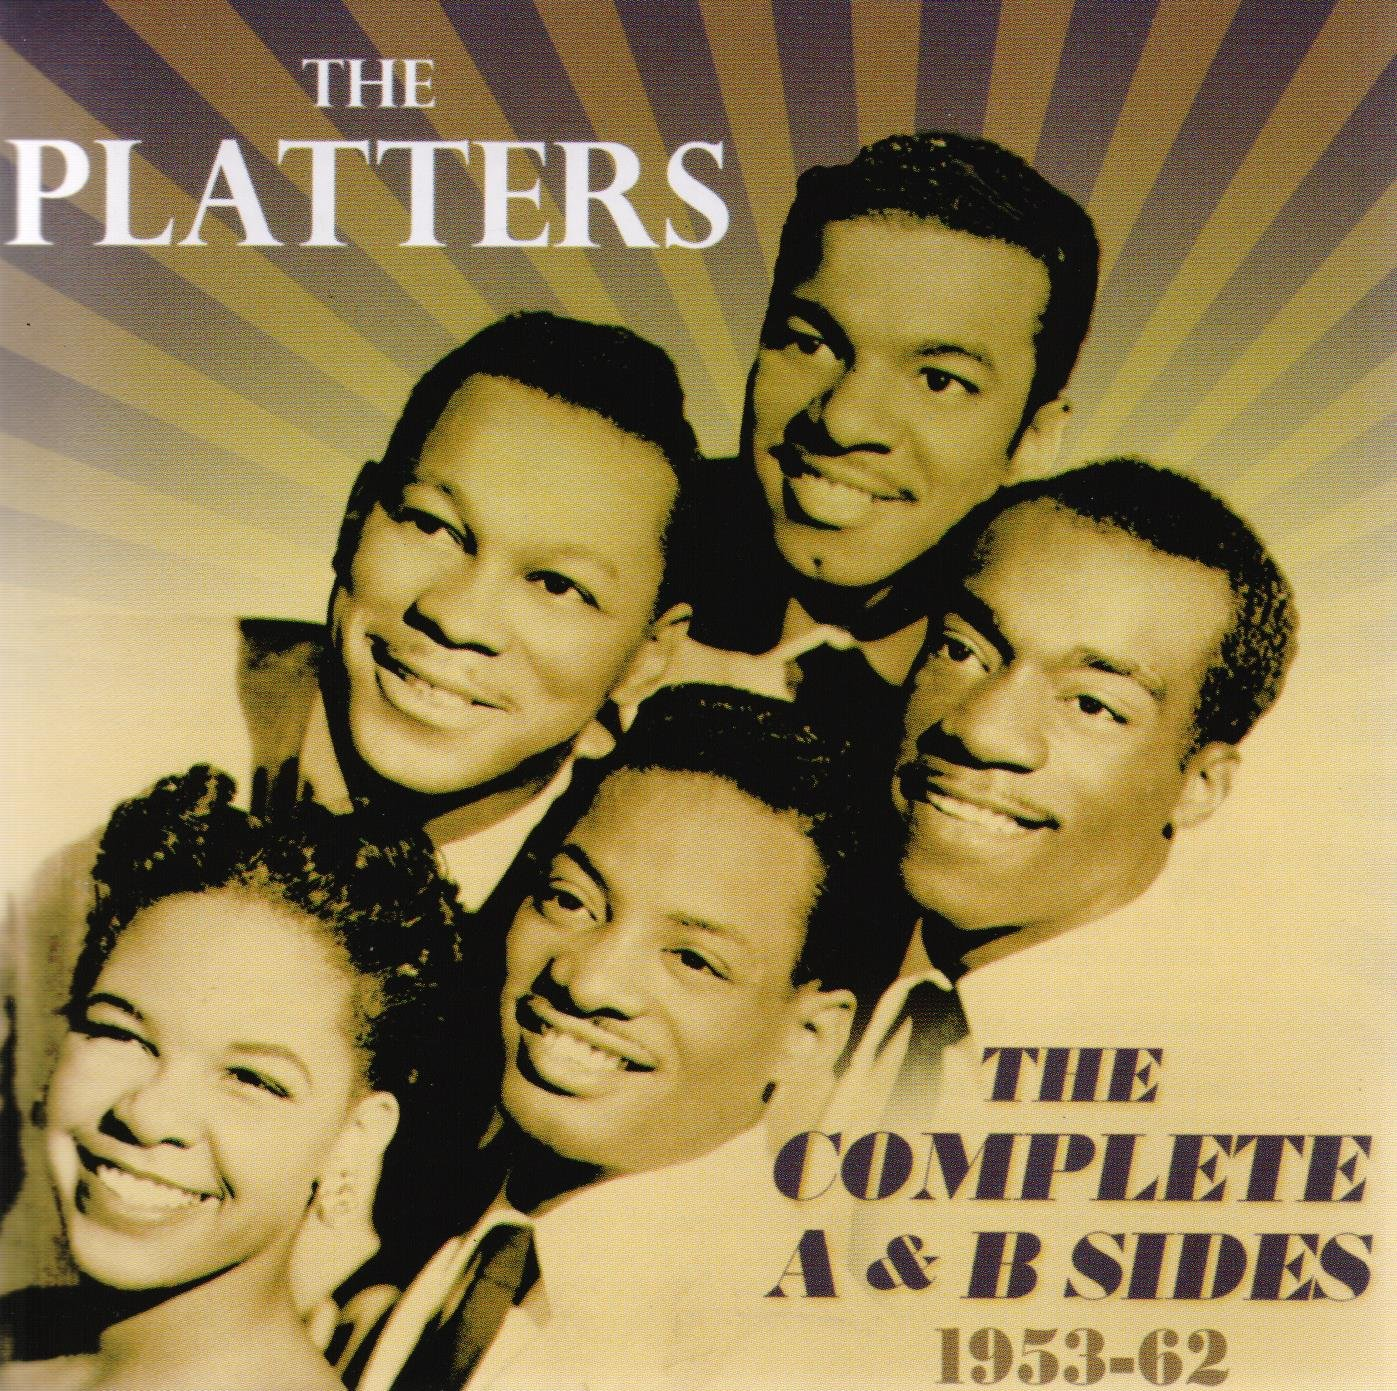 The Platters first hit song, Only You, at Vinyl Record Memories.